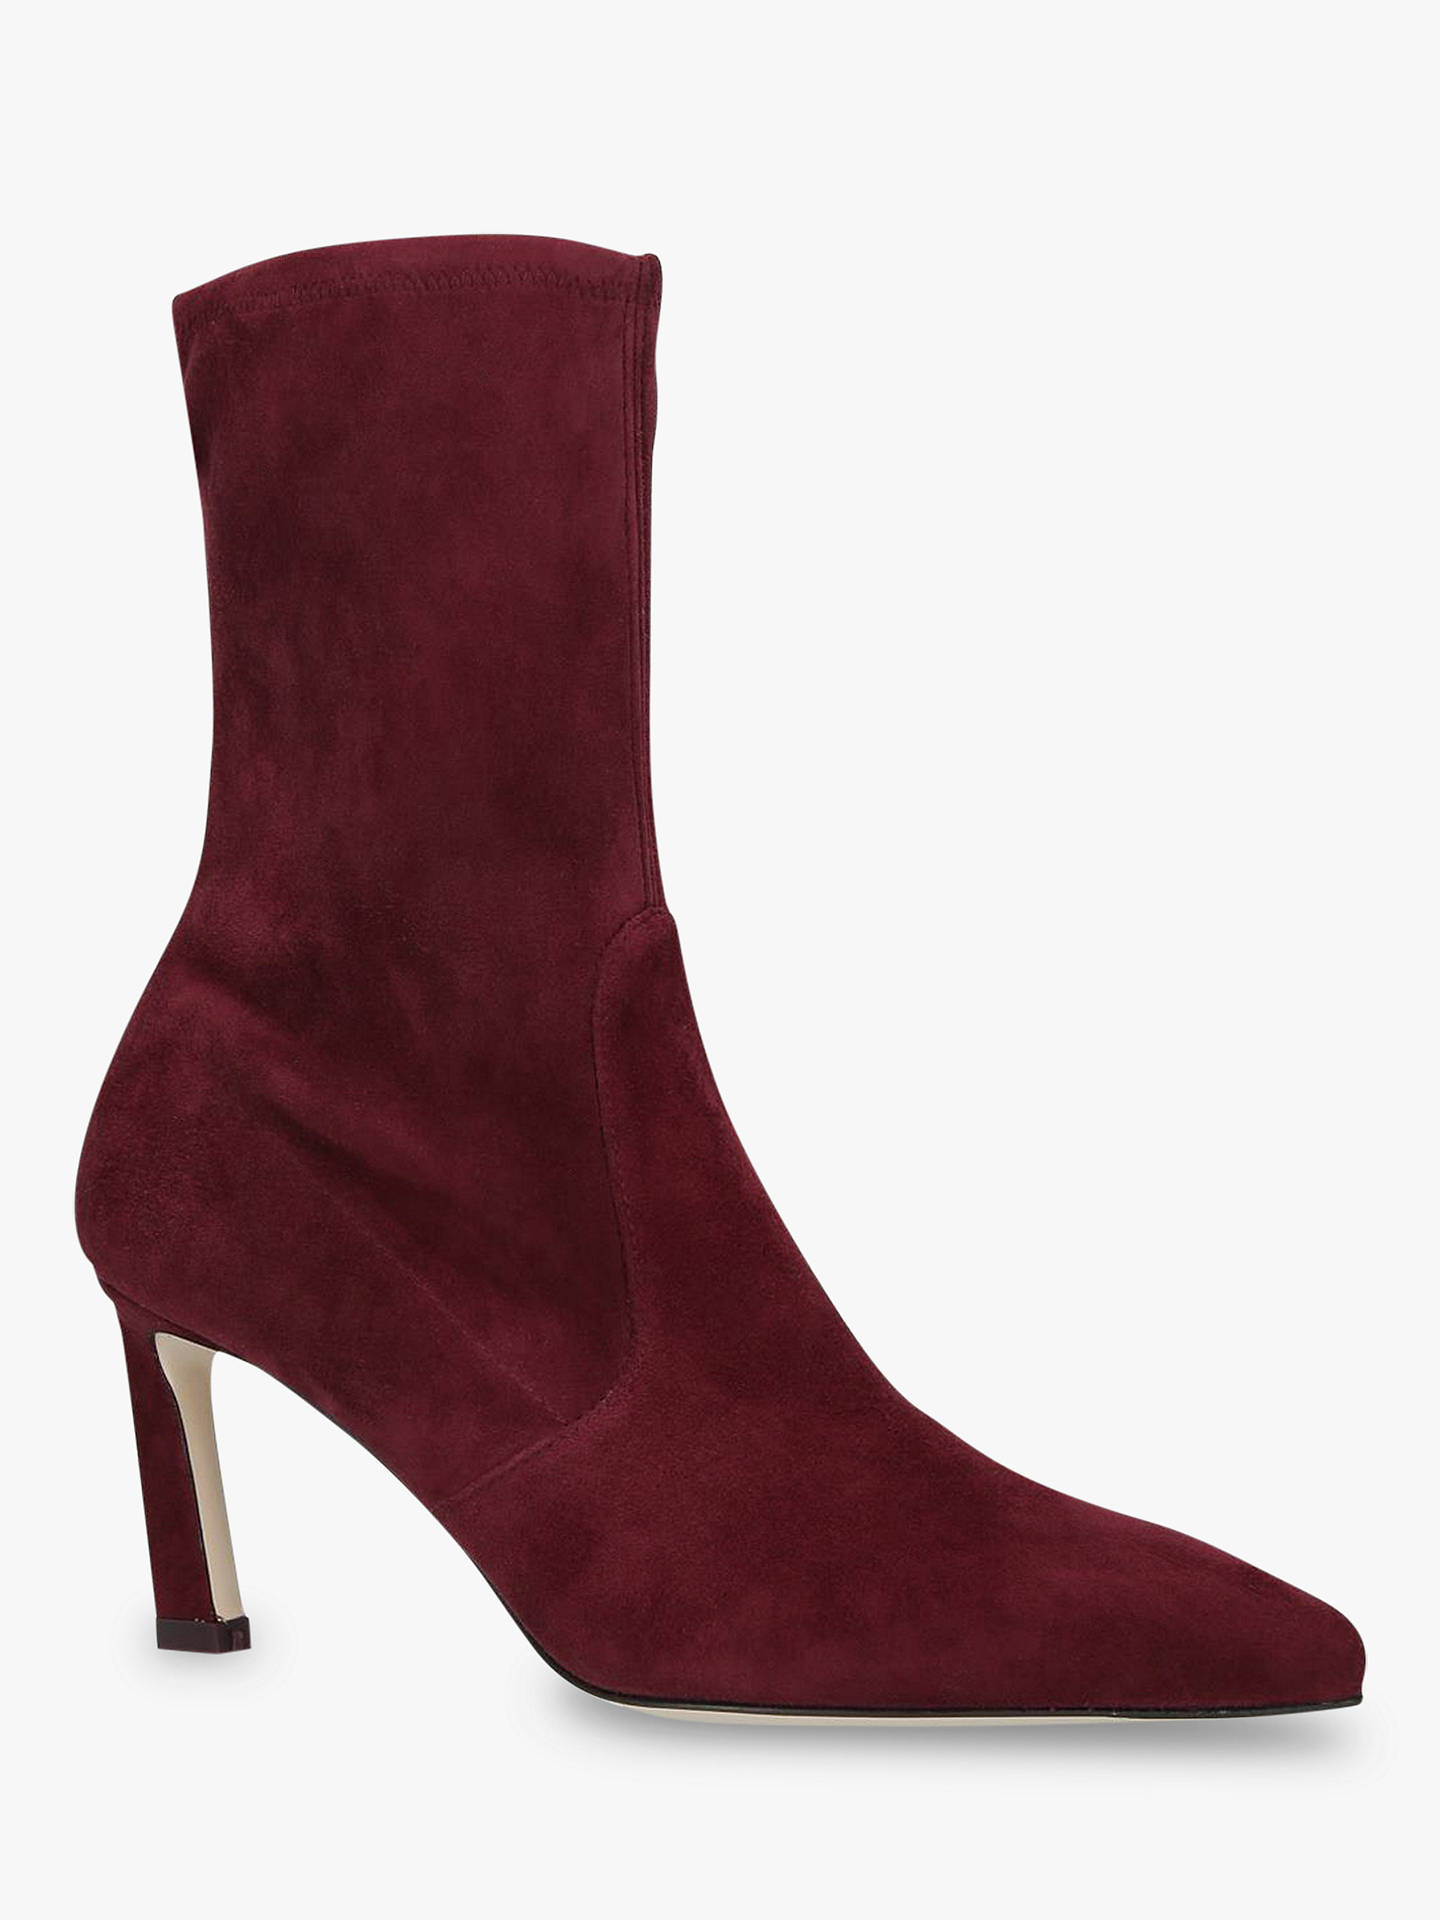 BuyStuart Weitzman Rapture Sock Boots, Red Suede, 2 Online at johnlewis.com